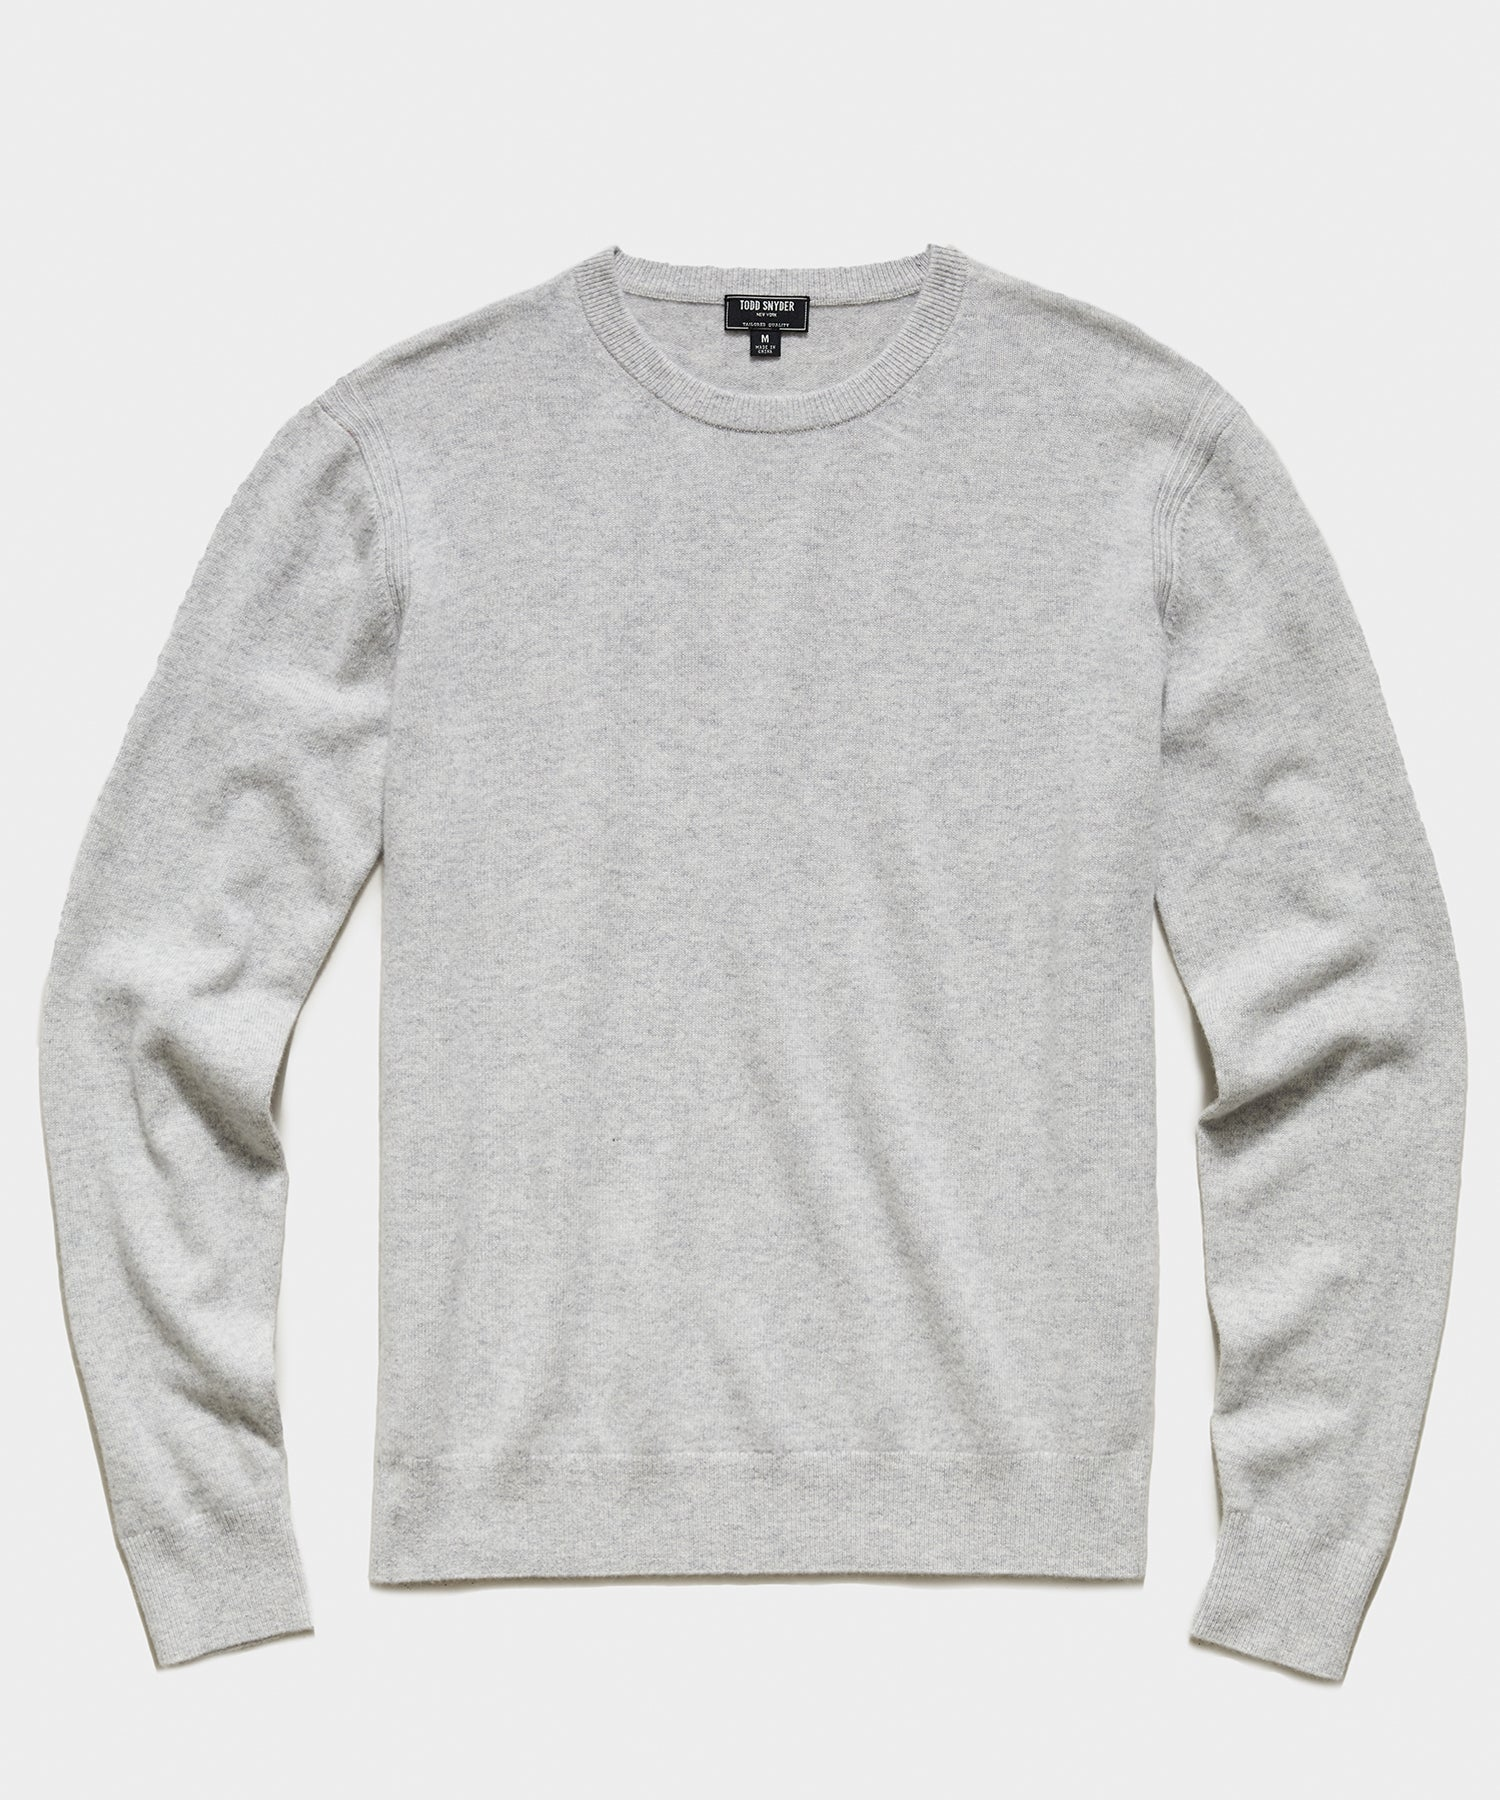 Cashmere Crewneck Sweater in Dove Grey